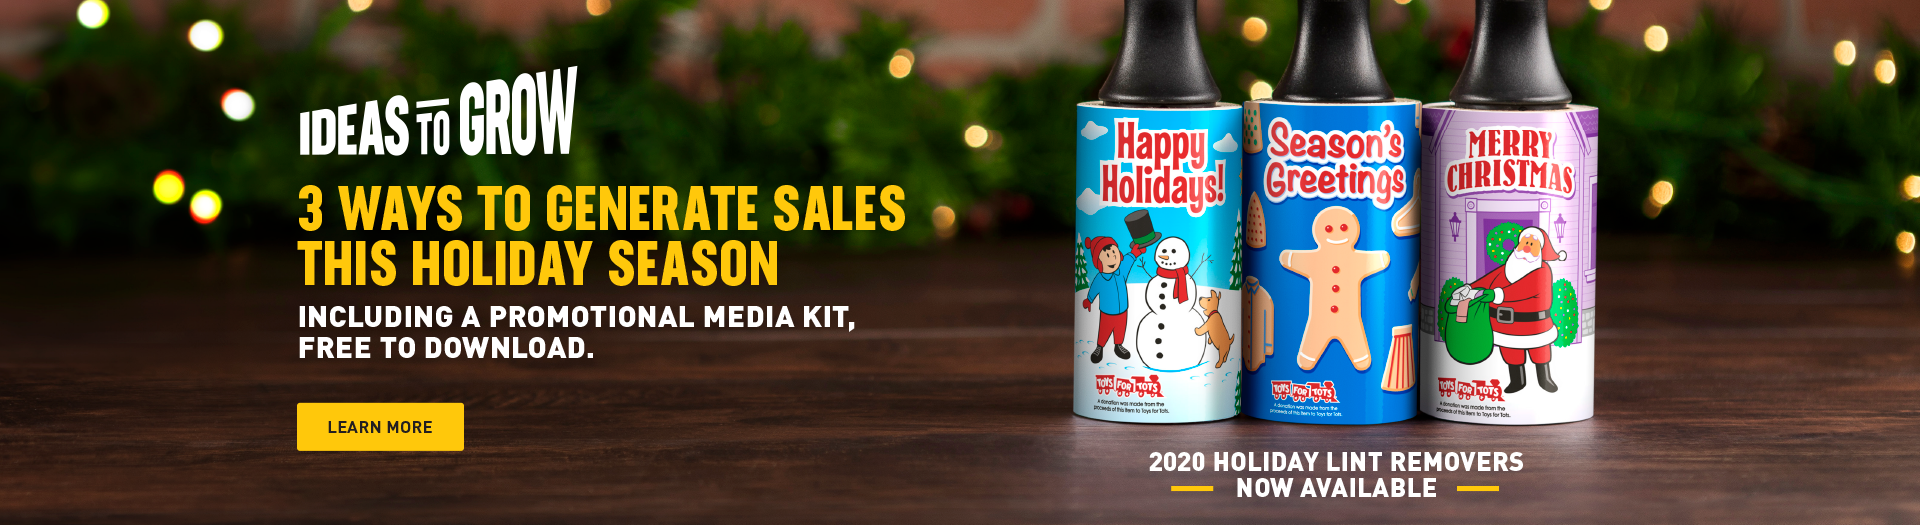 Ideas To Grow 3 Ways To Generate Sales This Holiday Season Including A Promotional Media Kit, Free to Download2020 Cleaner's Supply Holiday Lint Removers Now Available